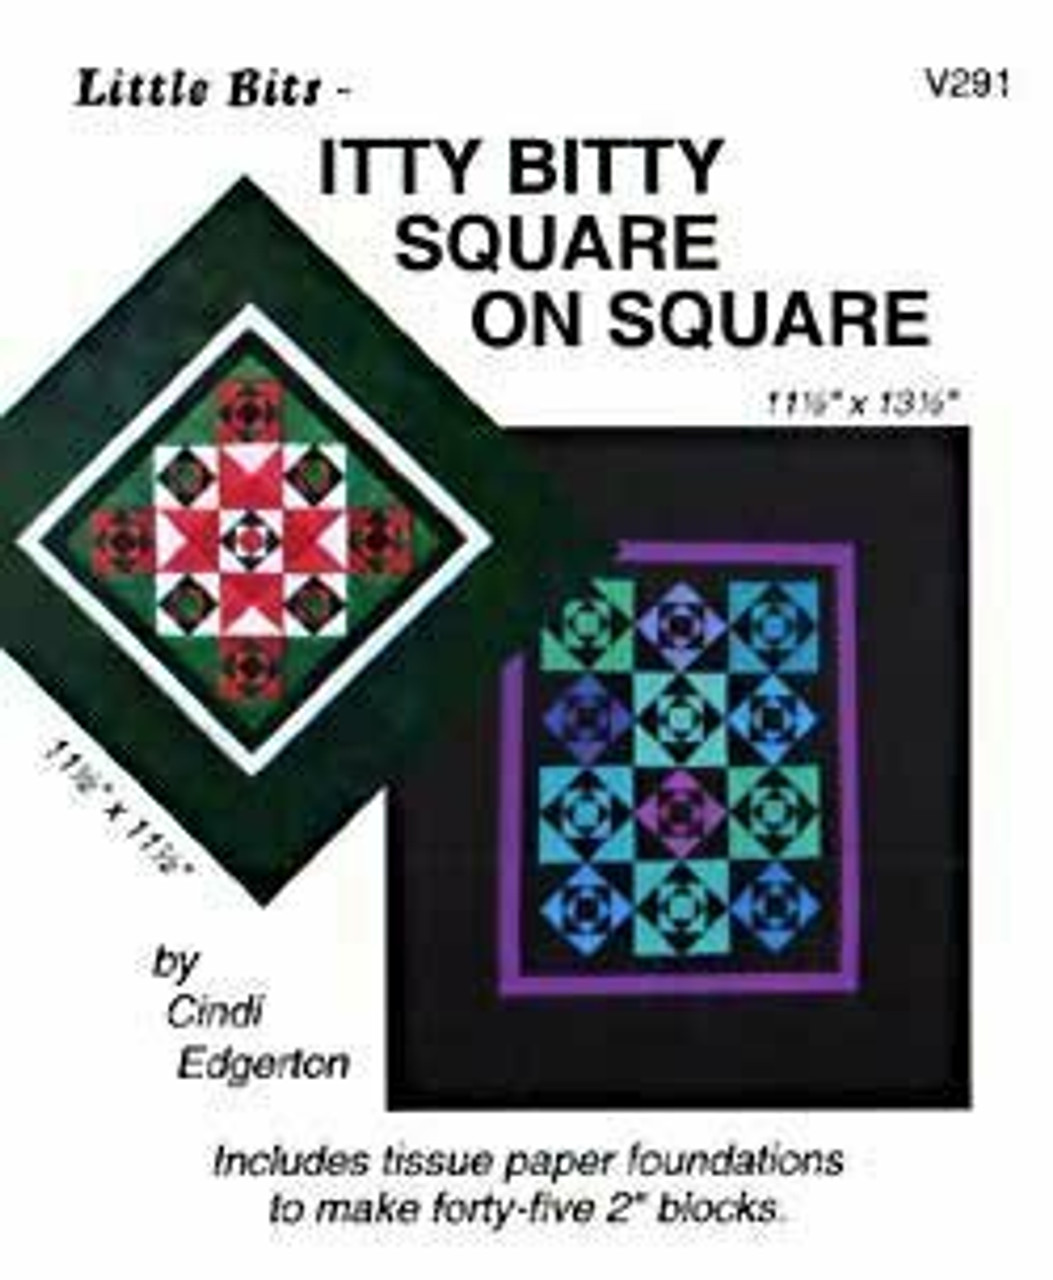 Itty Bitty Square on Square